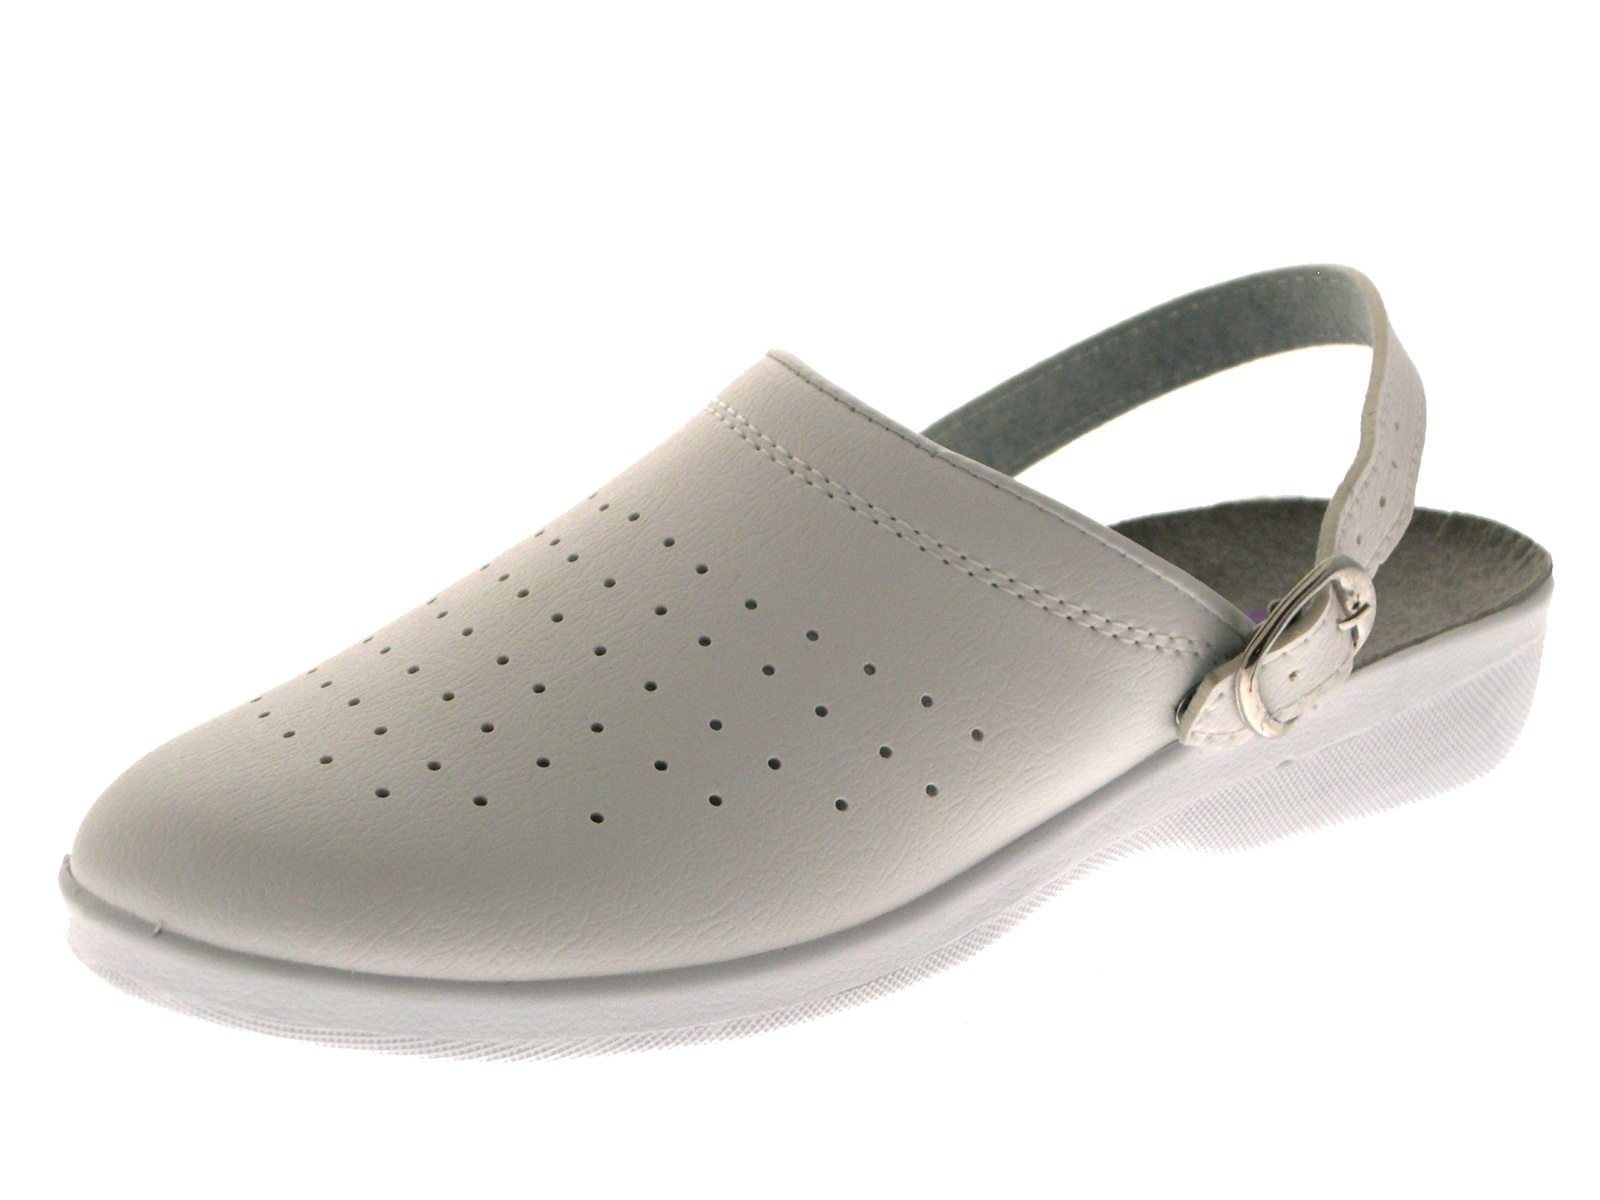 shoes for kitchen workers freestanding sink womens white full toe hospital clogs ladies work